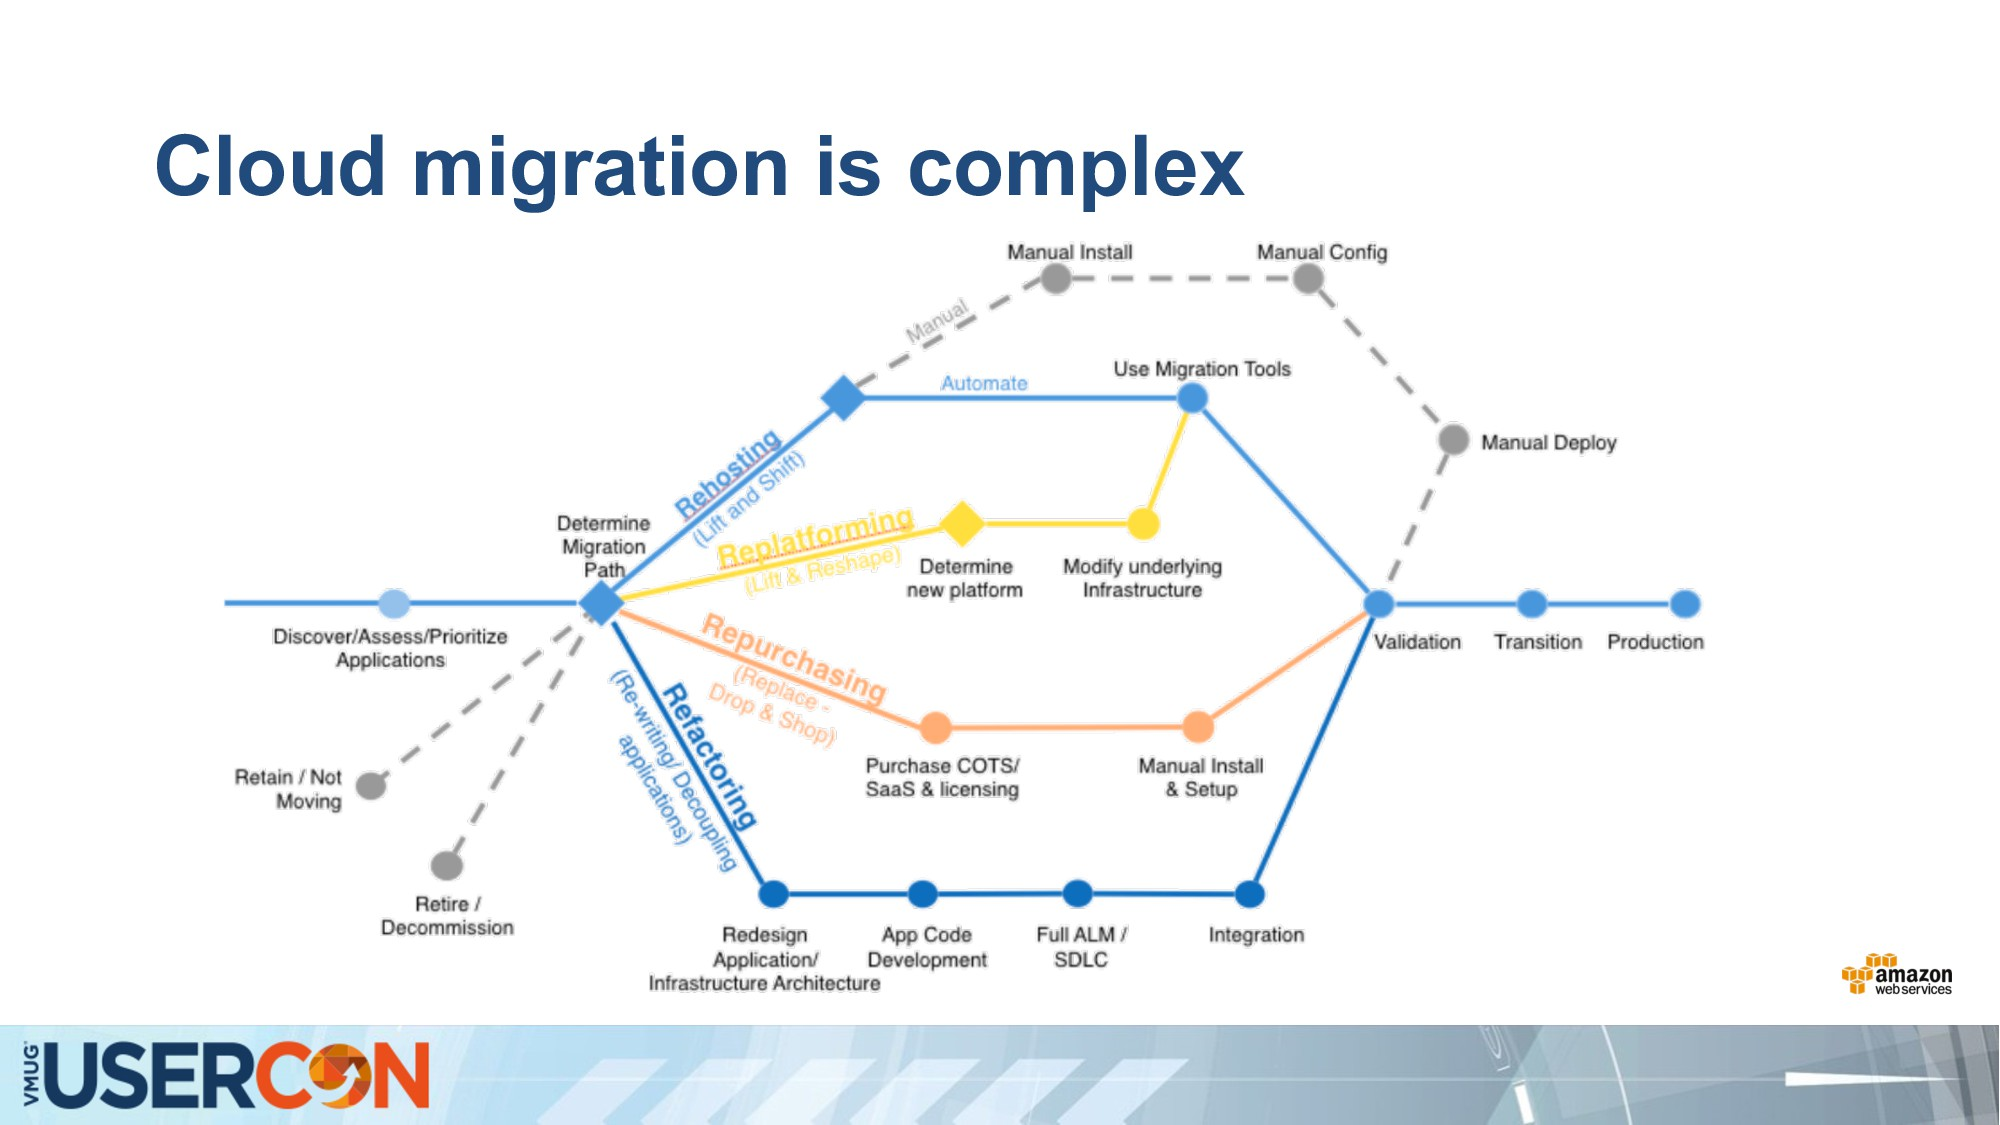 Cloud migration is complex